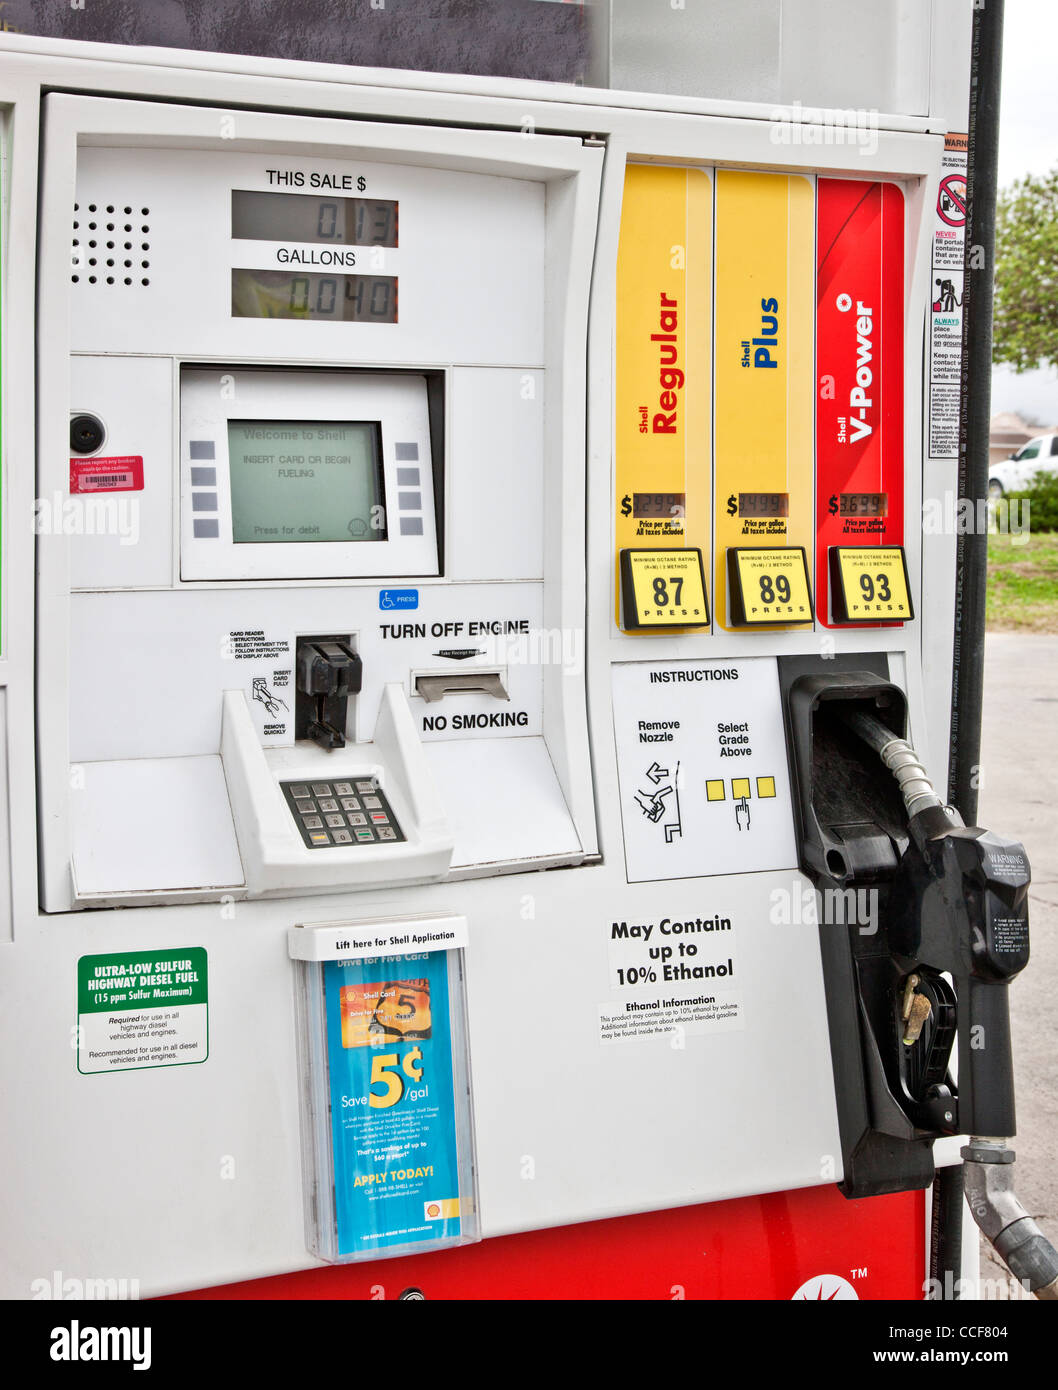 Fuel pump 'May Contain up to 10% Ethanol'. - Stock Image